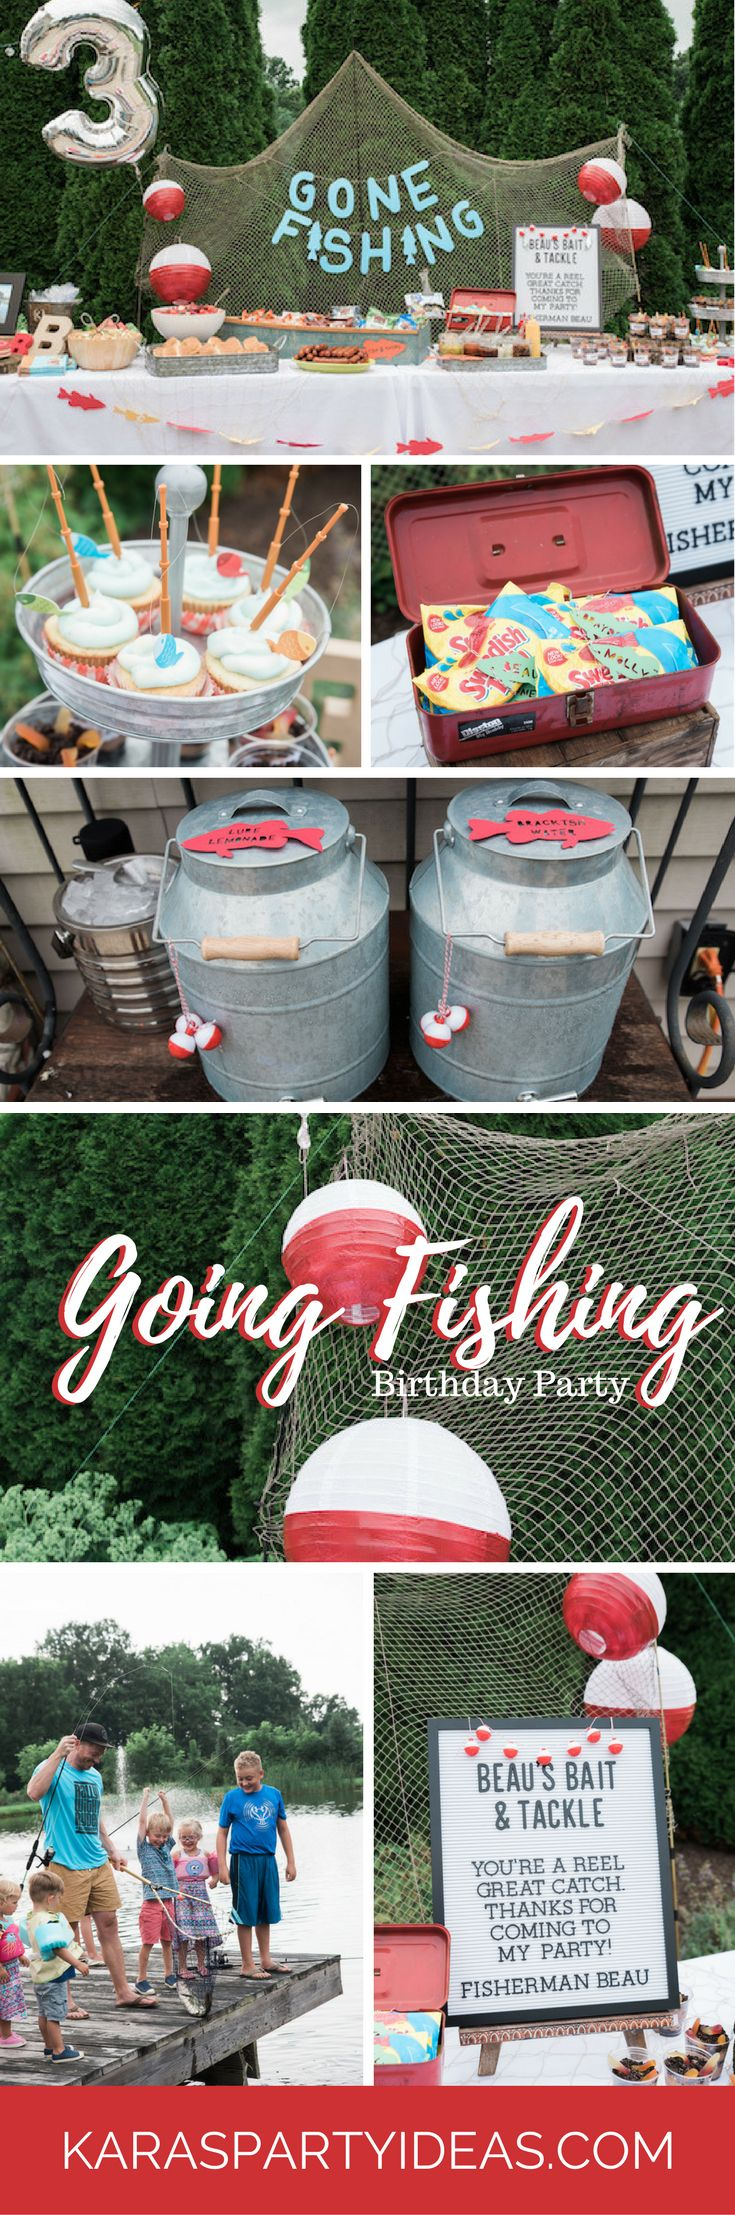 Going Fishing Birthday Party via Kara's Party Ideas - KarasPartyIdeas.com